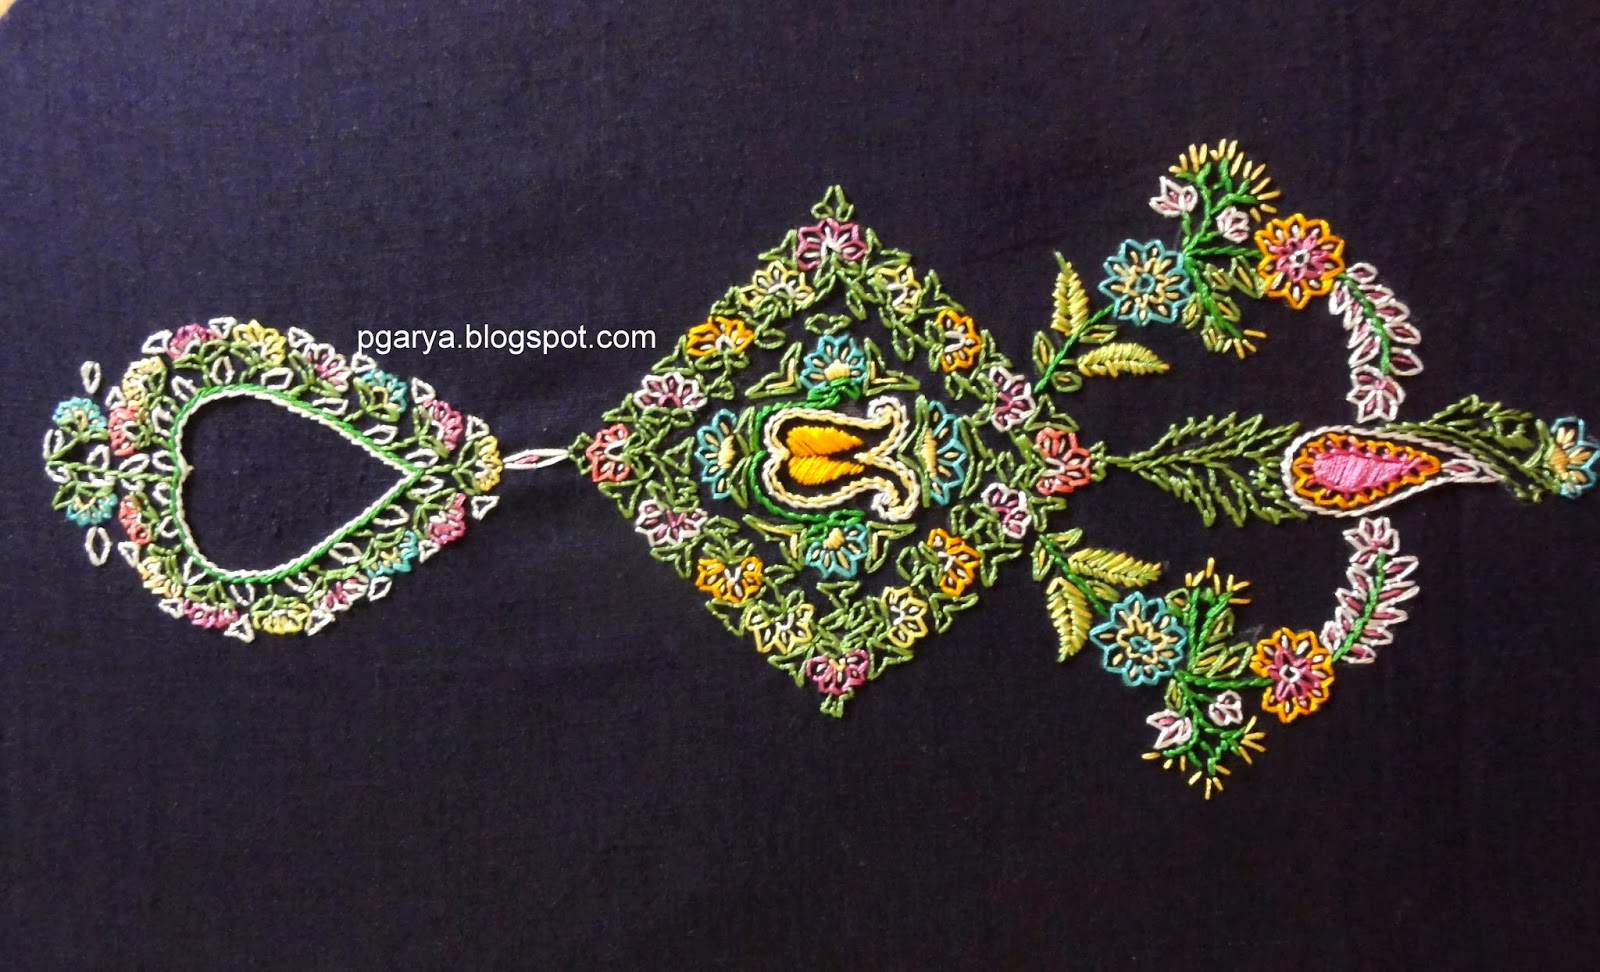 Crafty needlework by preethi g kashmiri embroidery